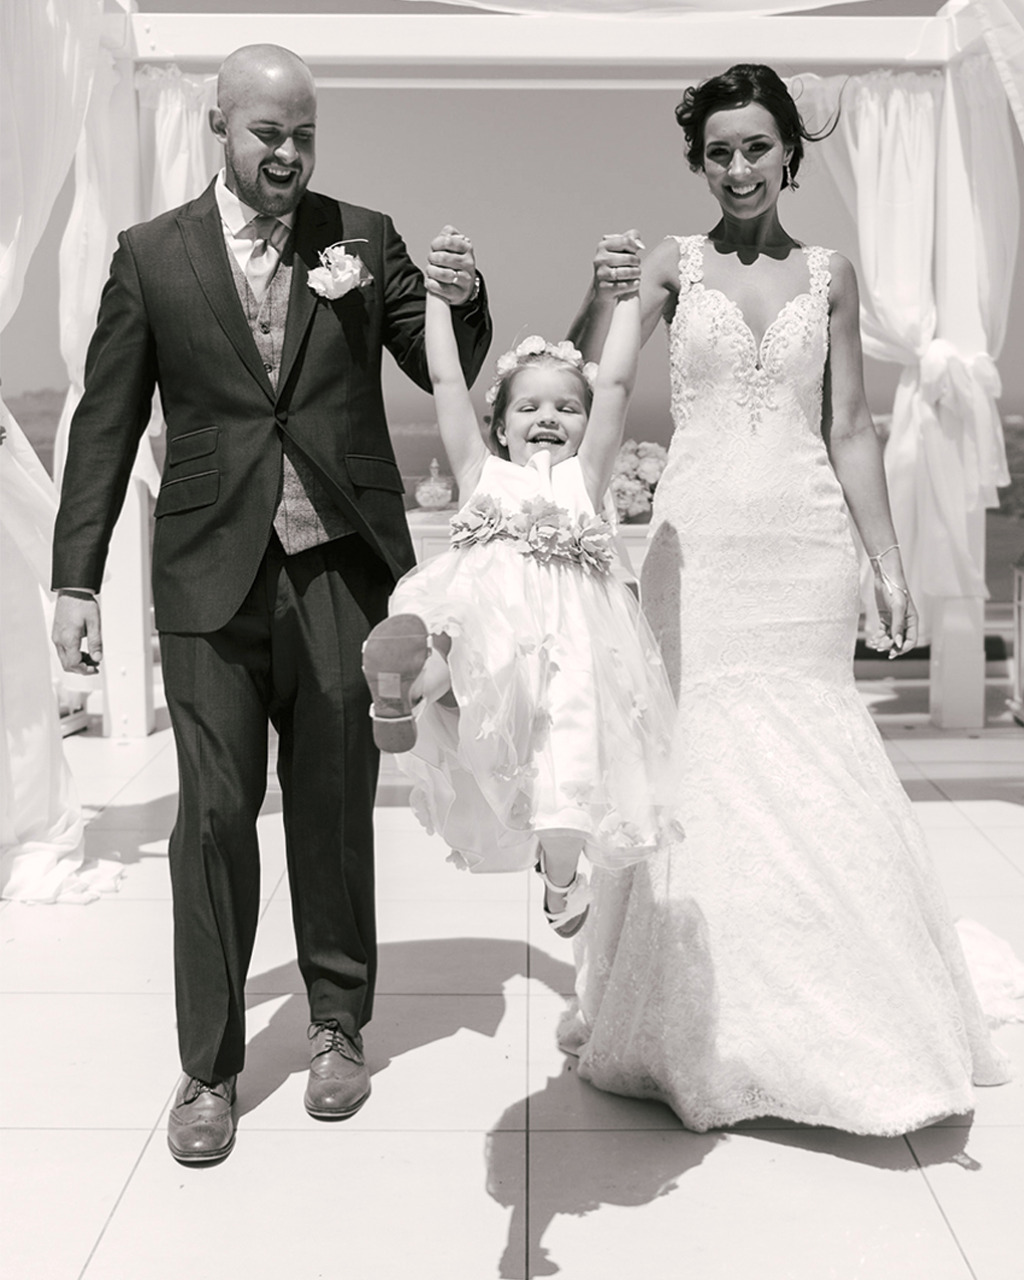 The love of a family is life's greatest blessing! This wedding photo is the proof!